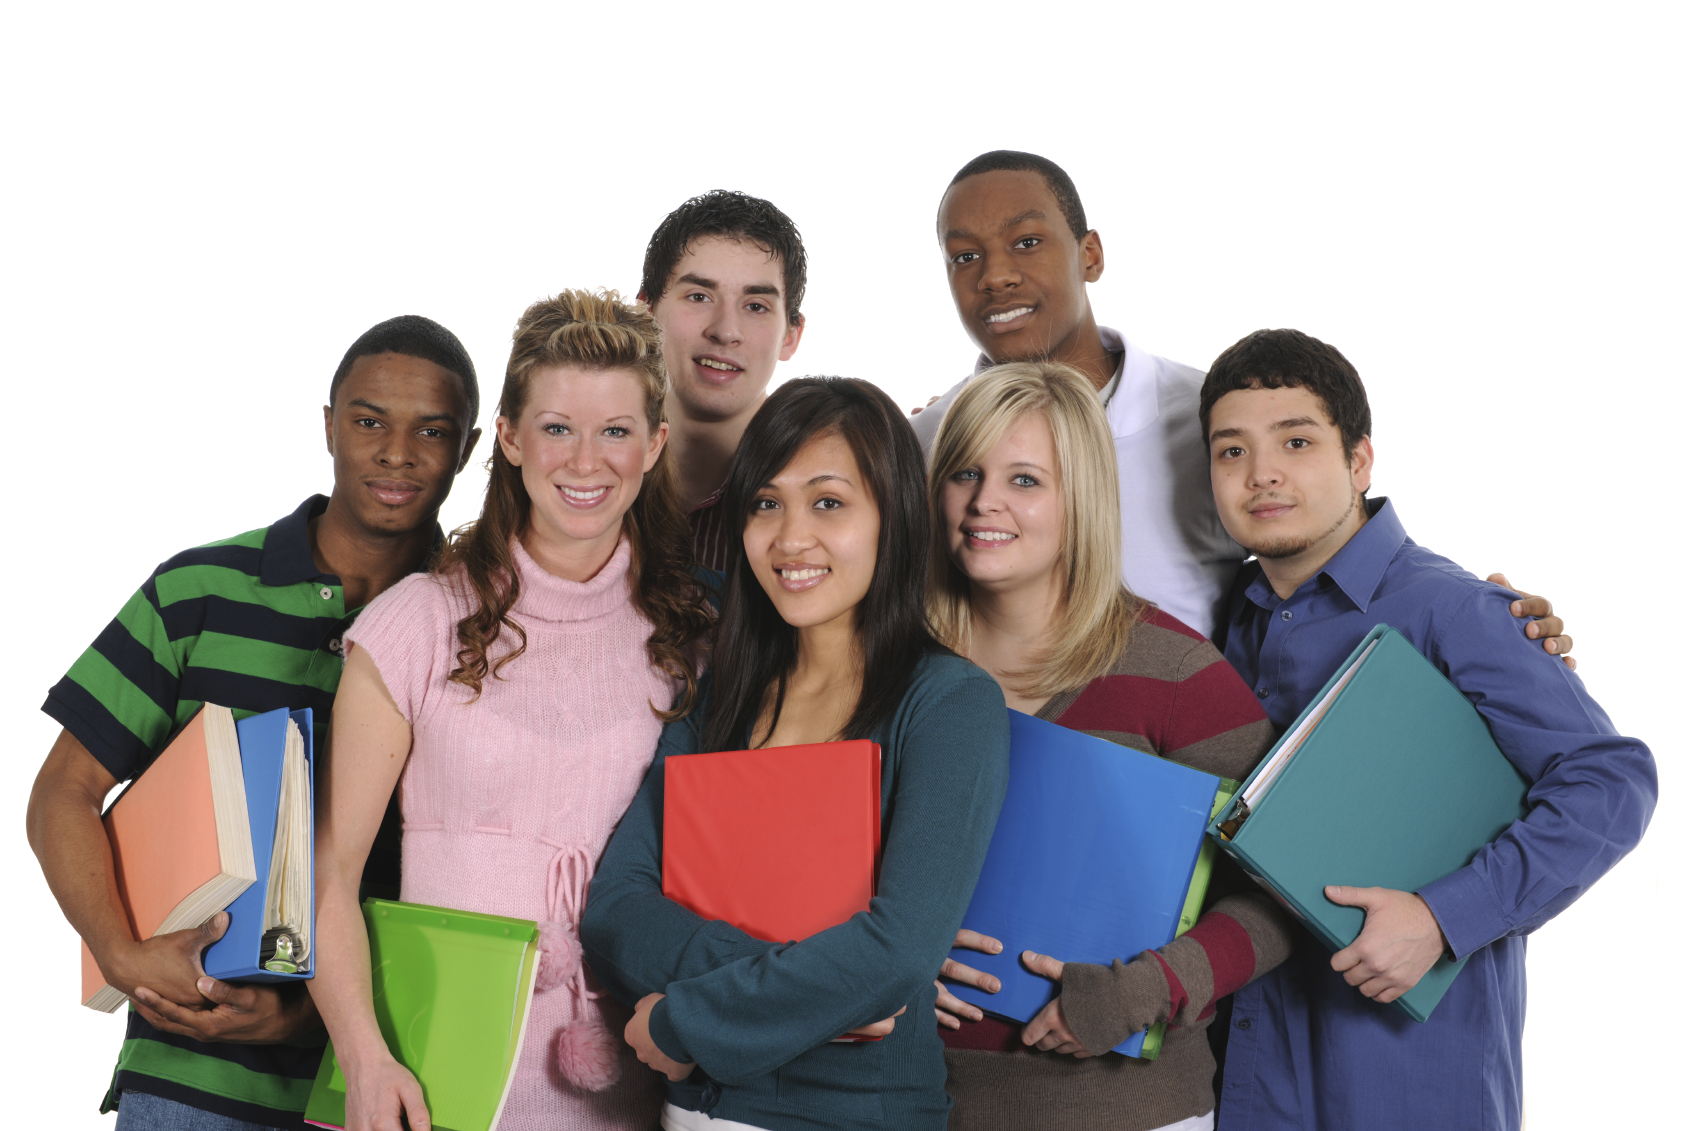 College and career solutions is counseling college students with